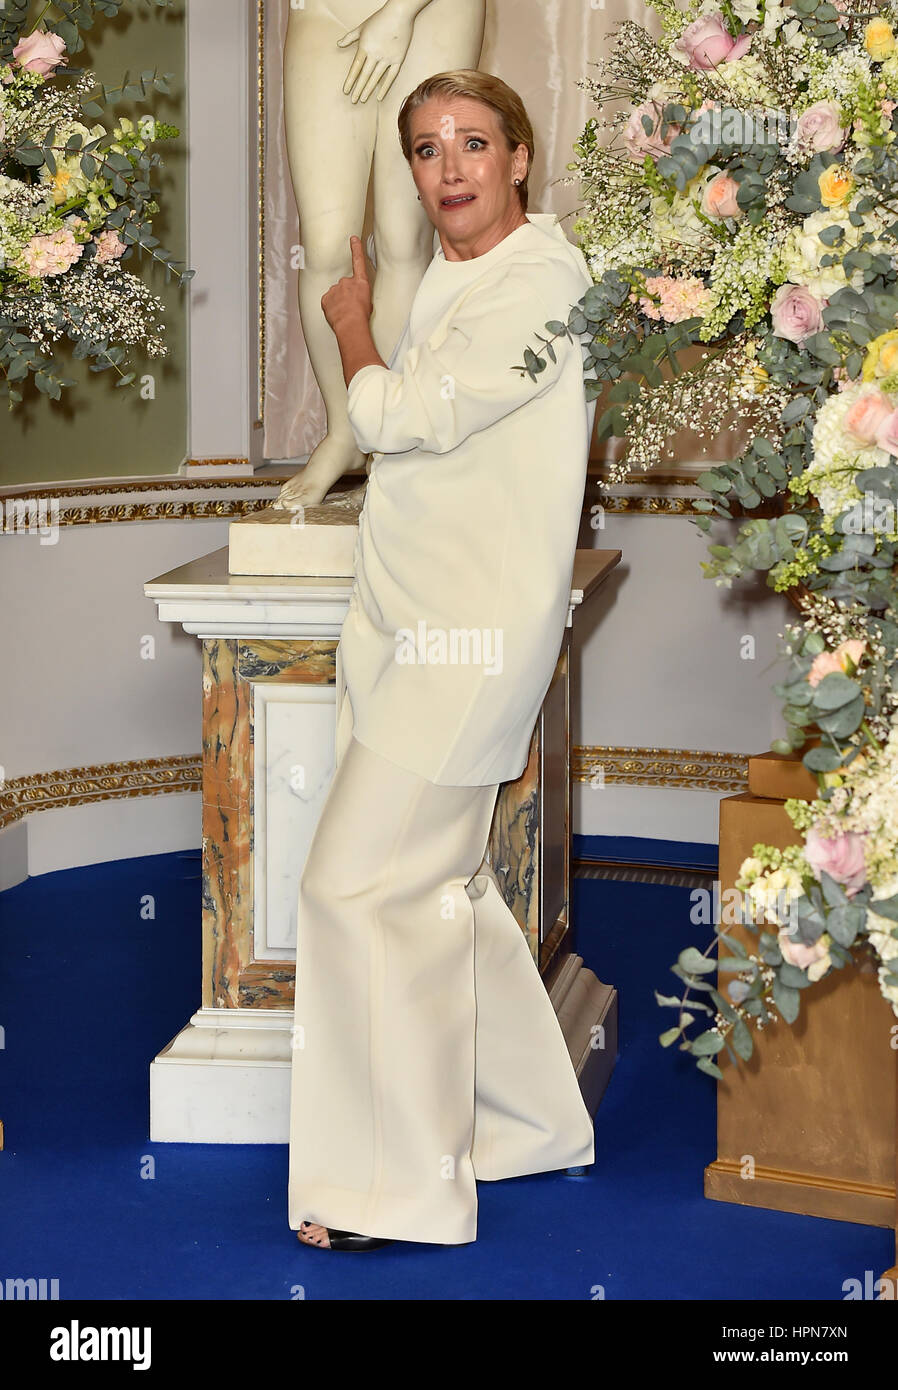 Emma Thompson Attending The Beauty And The Beast Launch Event At Stock Photo Alamy